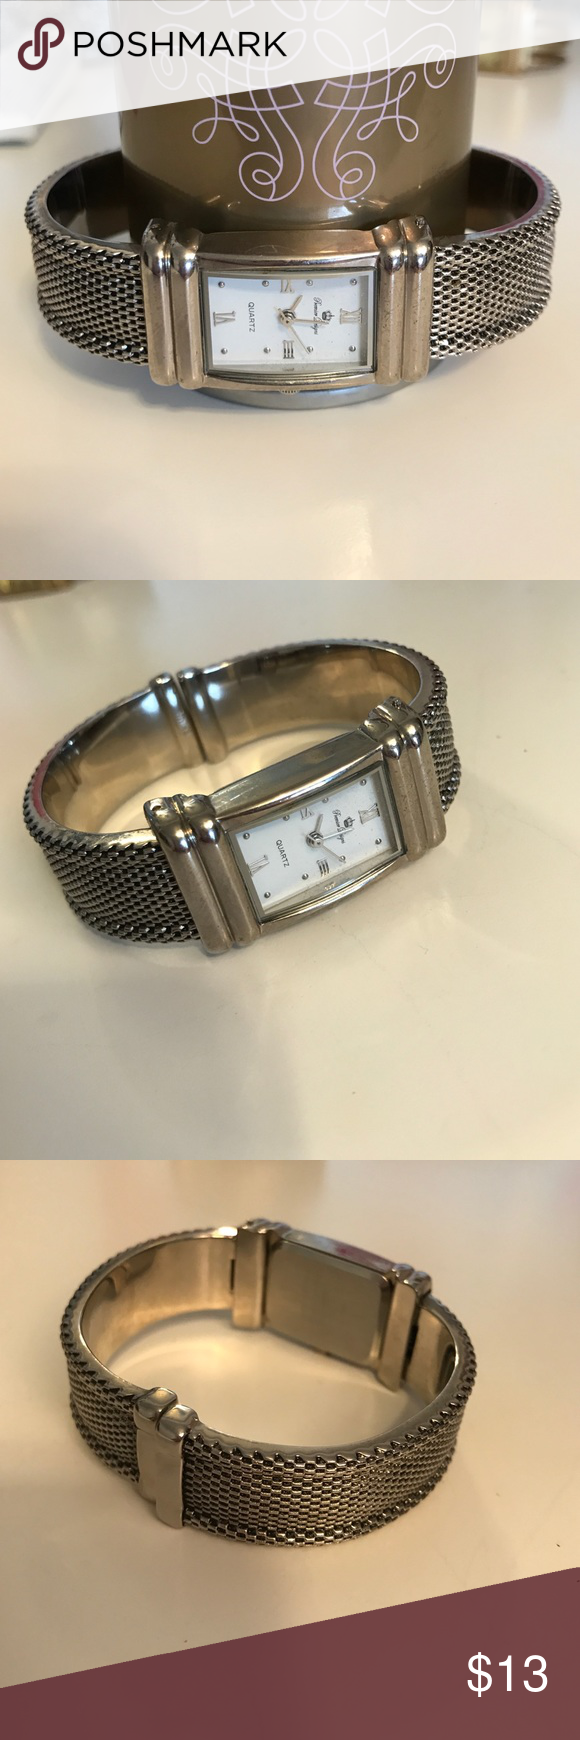 Silver watch Only worn a few times! In great shape! Let me know if you have any questions! This not not real silver, only the color. The watch also works but it needs batteries Premier Designs Accessories Watches